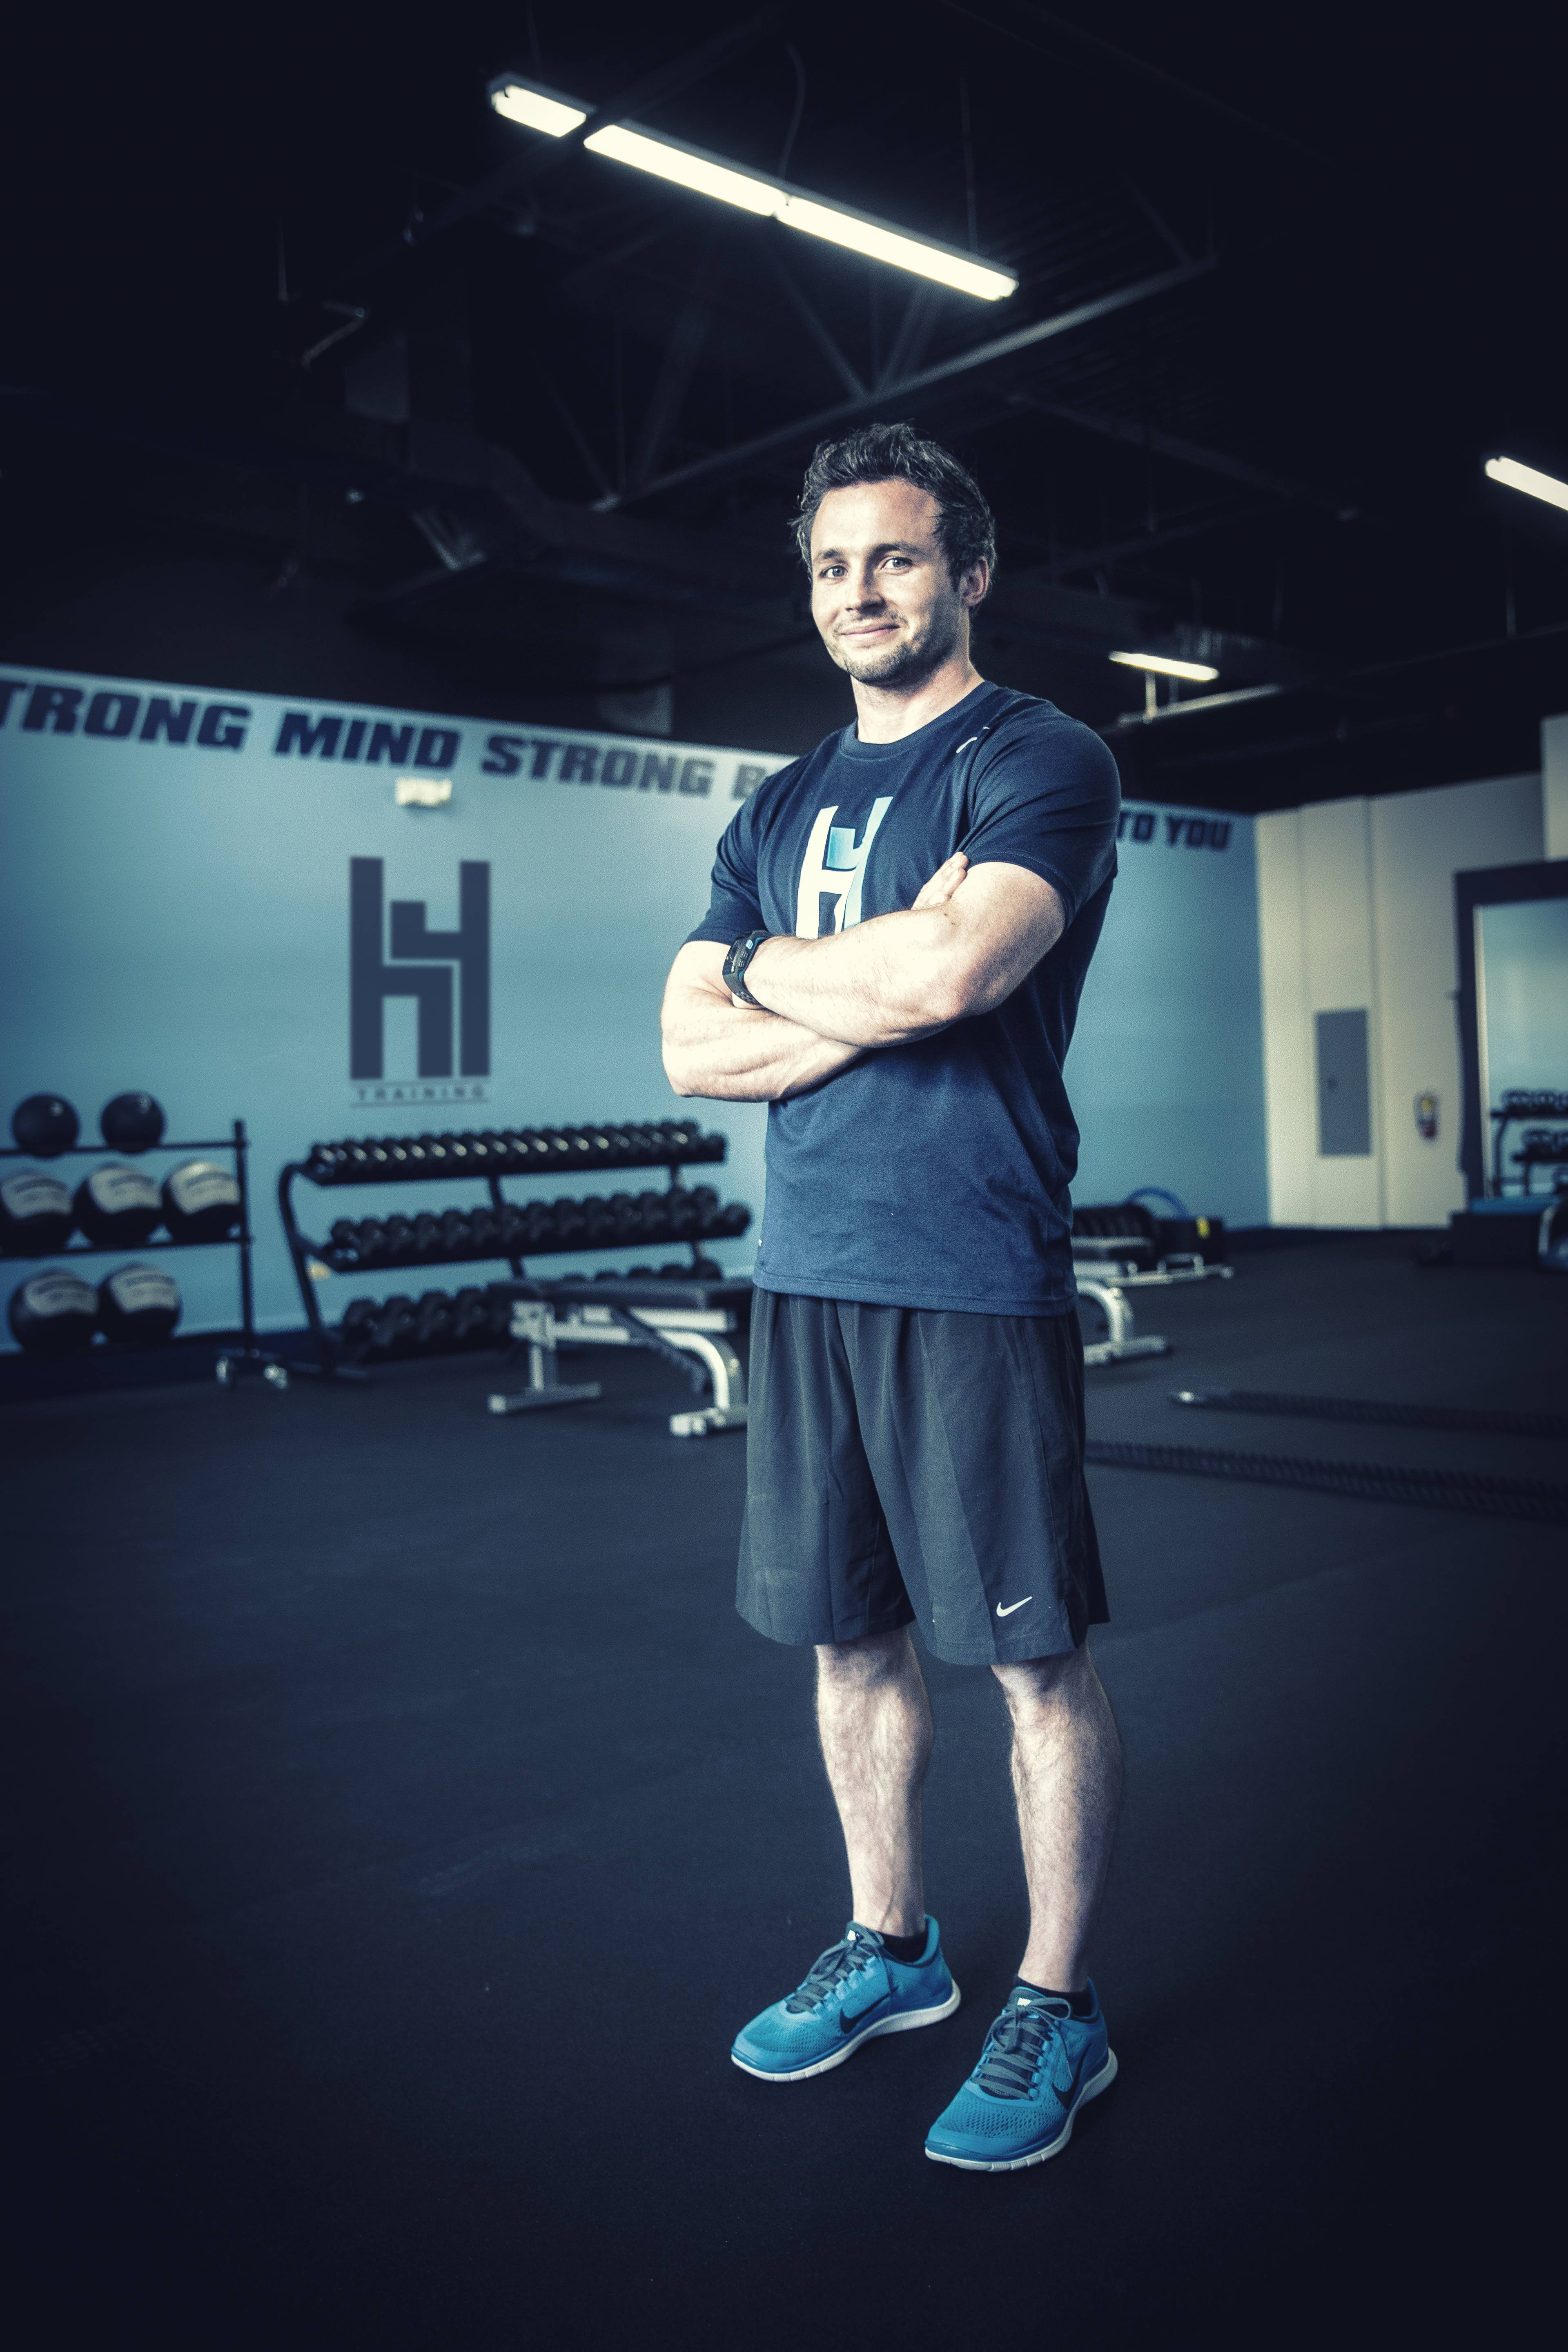 Owner and Coach of H4 Training, Hank Ebeling IV. Photo is taken inside the brand new 3,000 square foot facility.